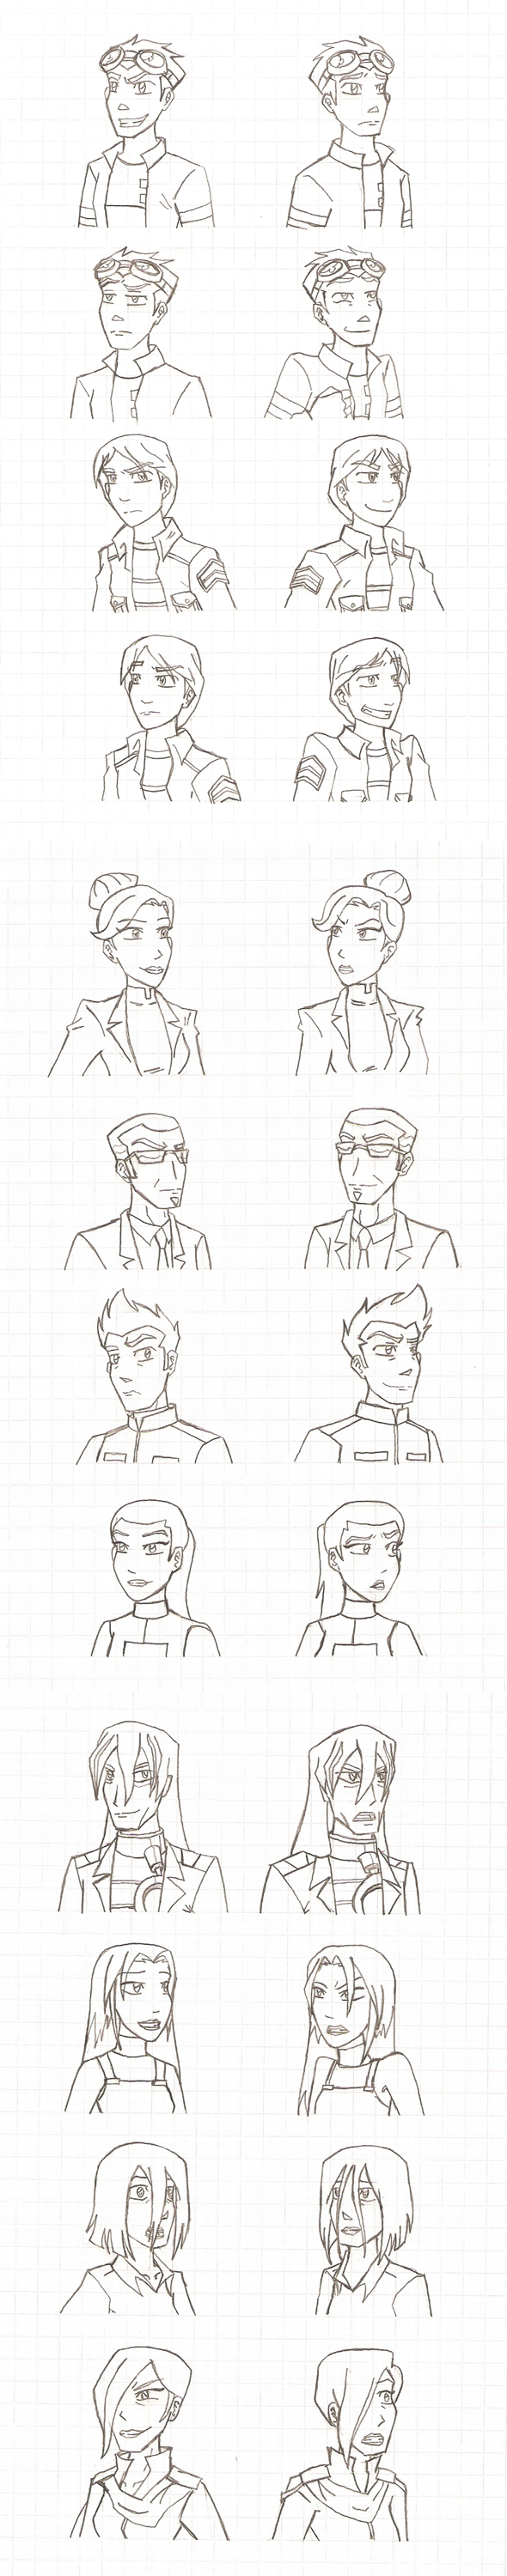 GR - Expression Doodles by DarthAnimus